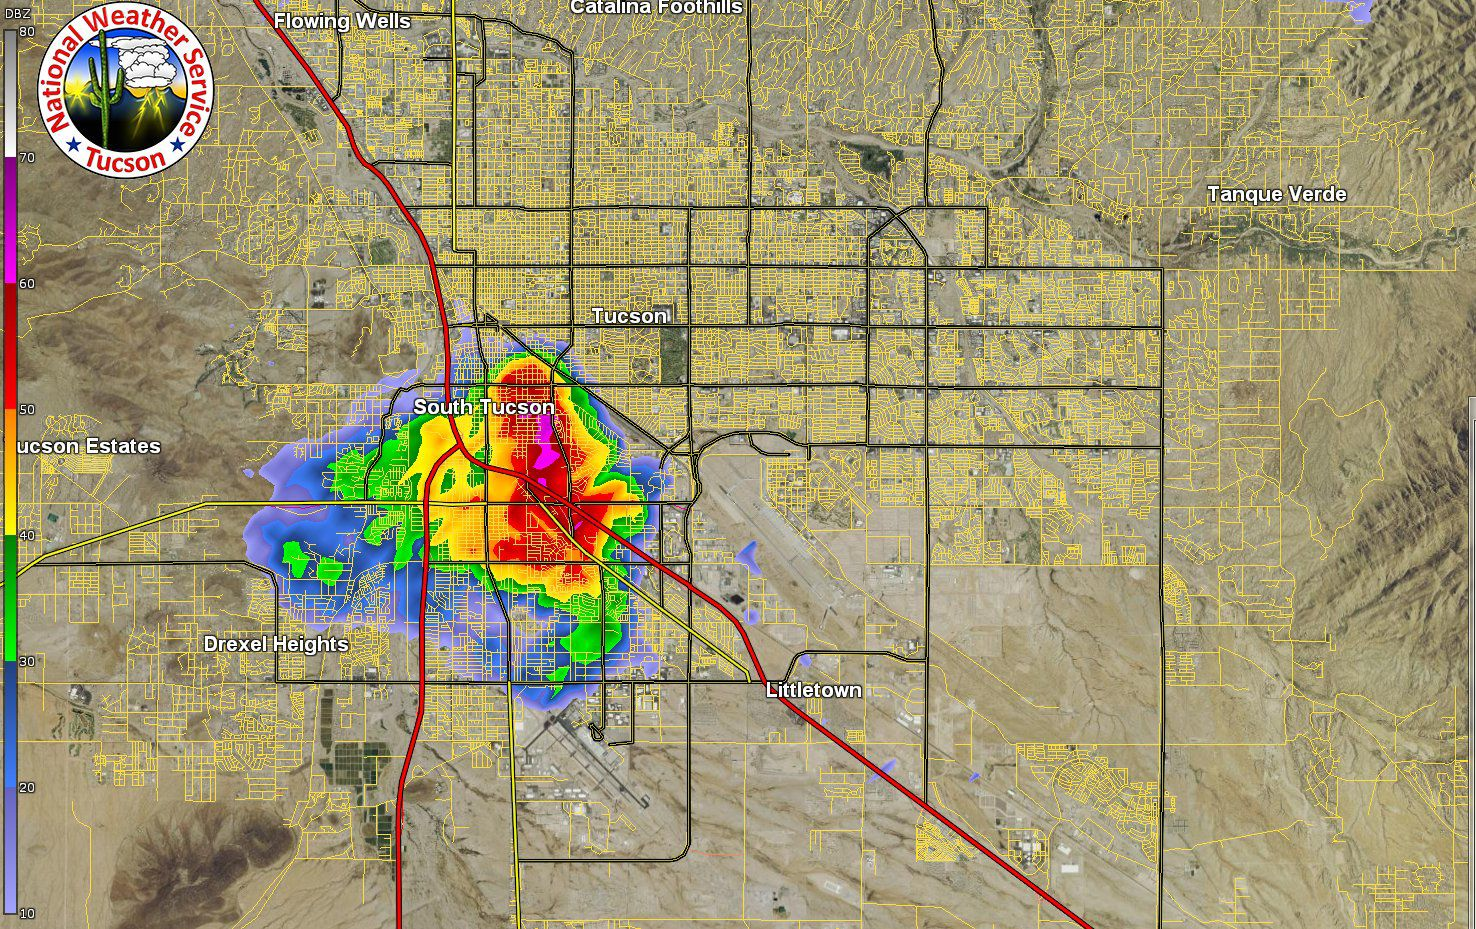 Monsoon storms have arrived to Tucson area | Tucson.com